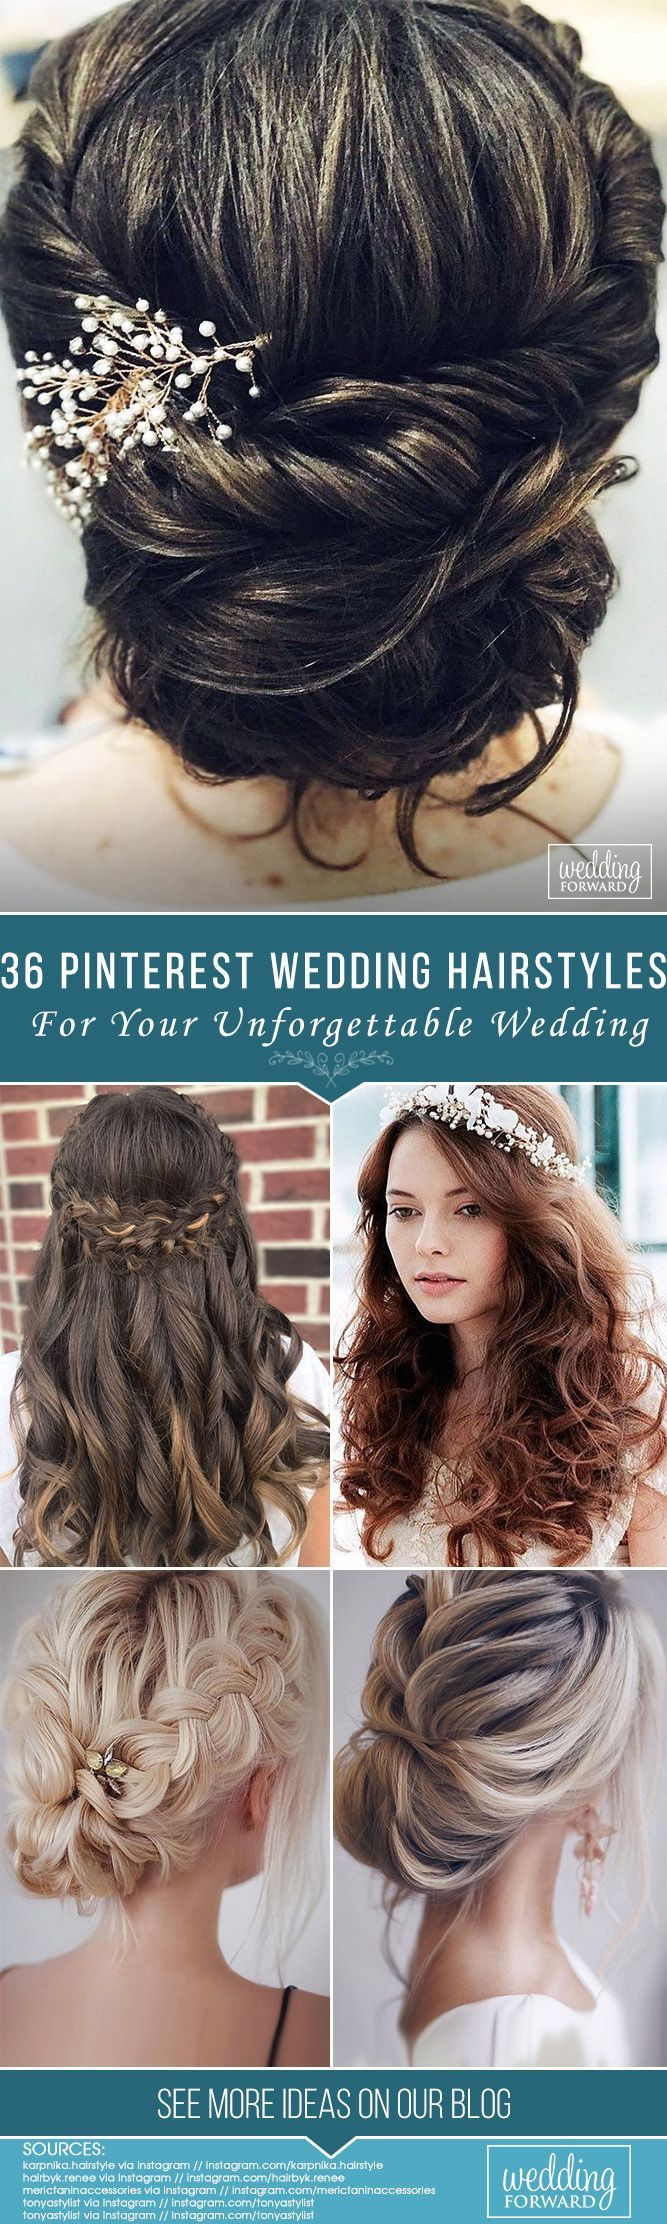 36 Pinterest wedding hairstyles for your unforgettable wedding ❤ If you are in ... #wedding #wedding hairstyles #pinterest #unforgettable